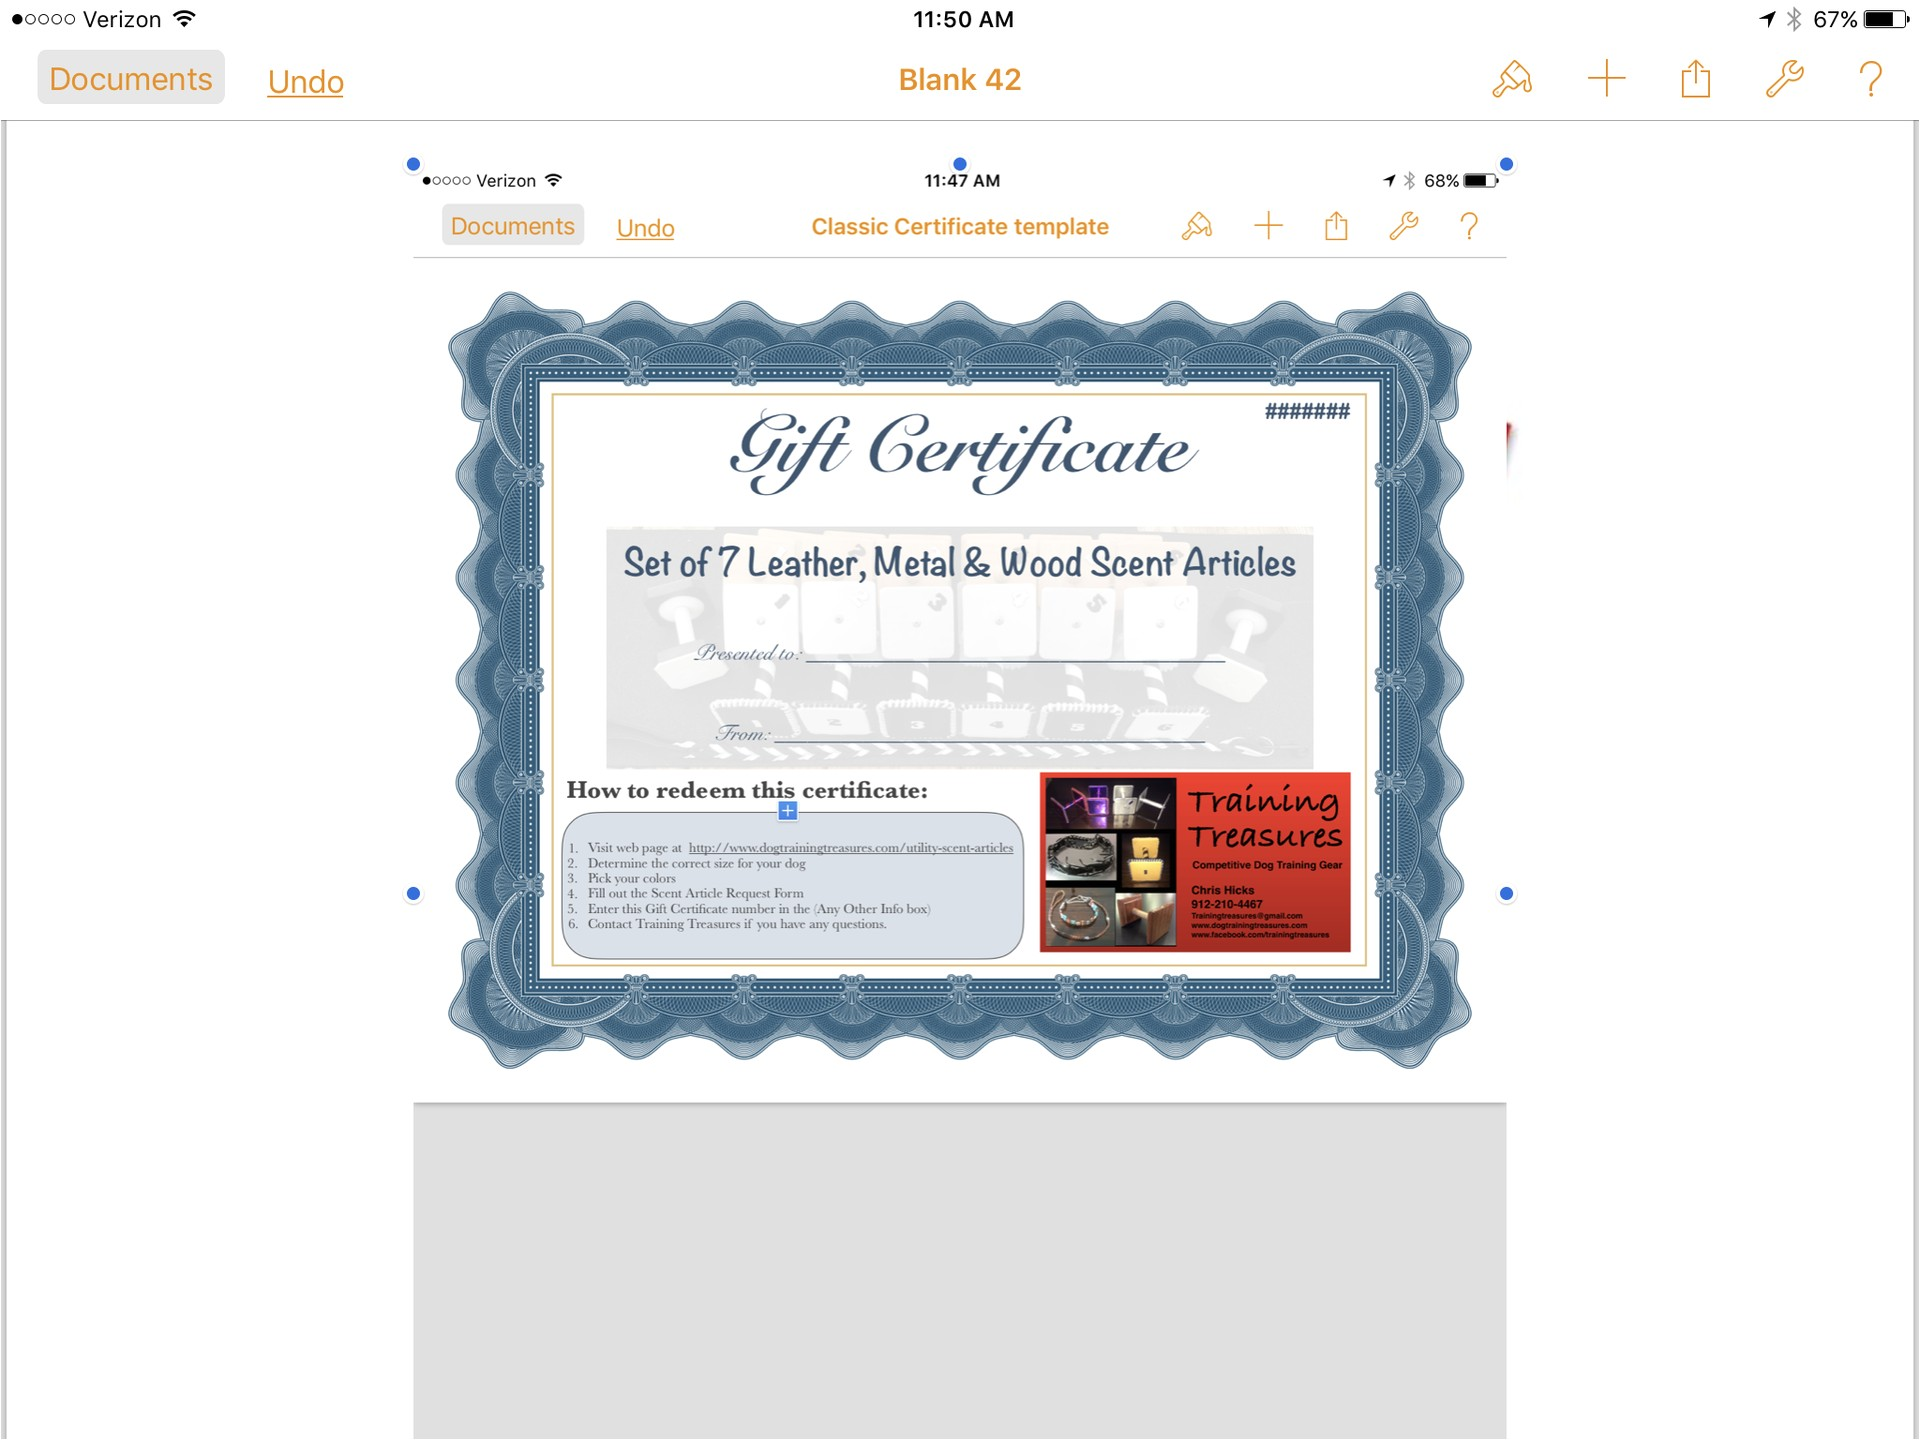 Personal Training Gift Certificate Template Personal Training Gift Certificate Template